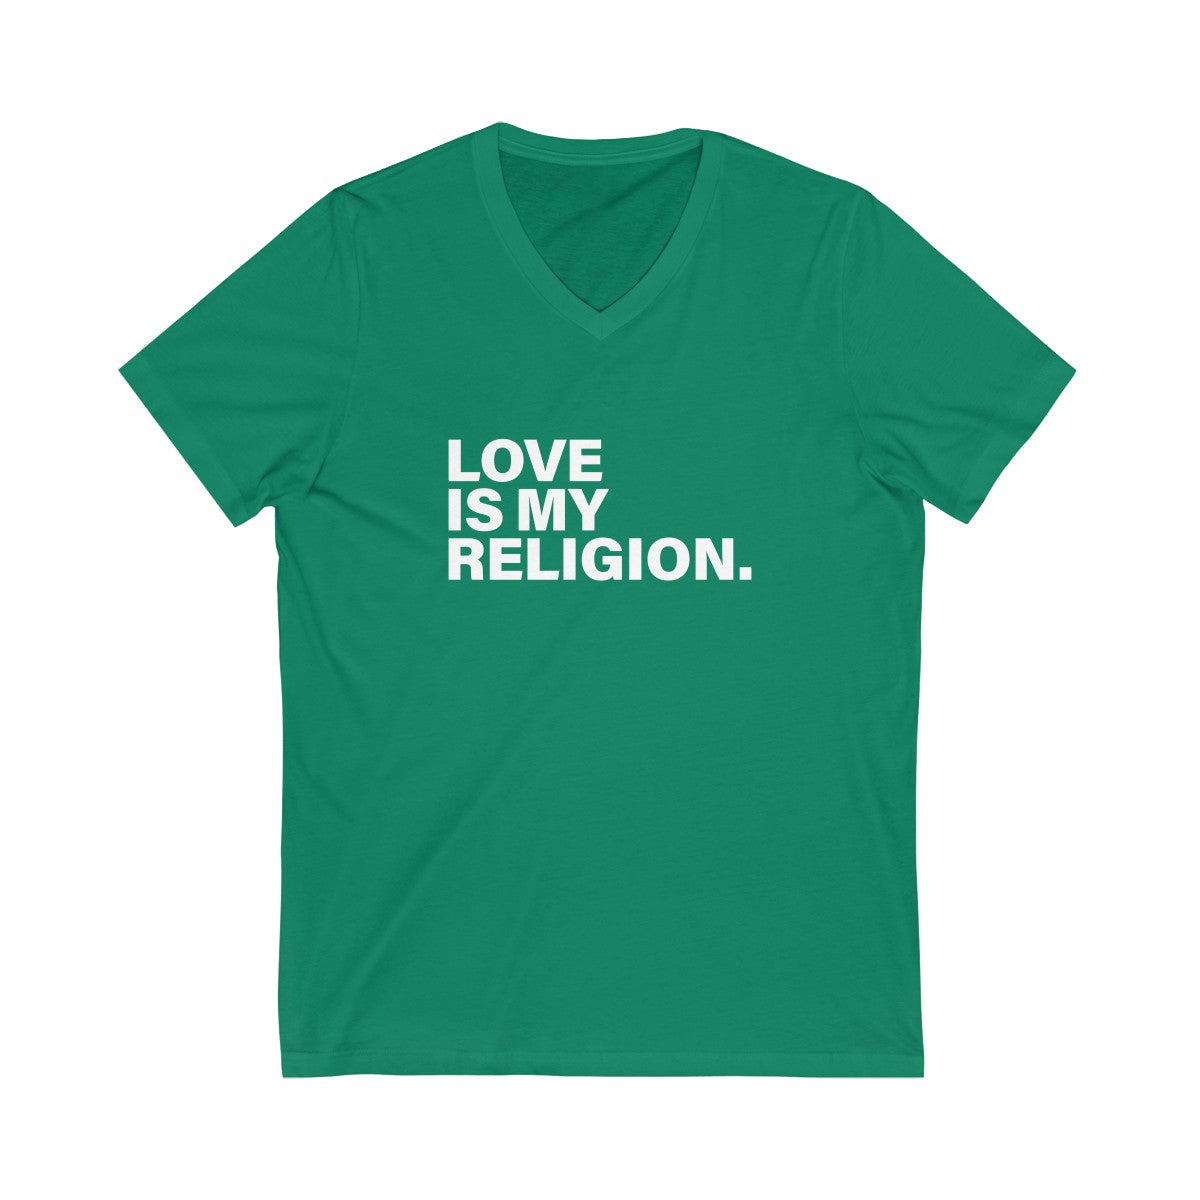 Love Is My Religion Unisex Jersey Short Sleeve V-Neck Tee